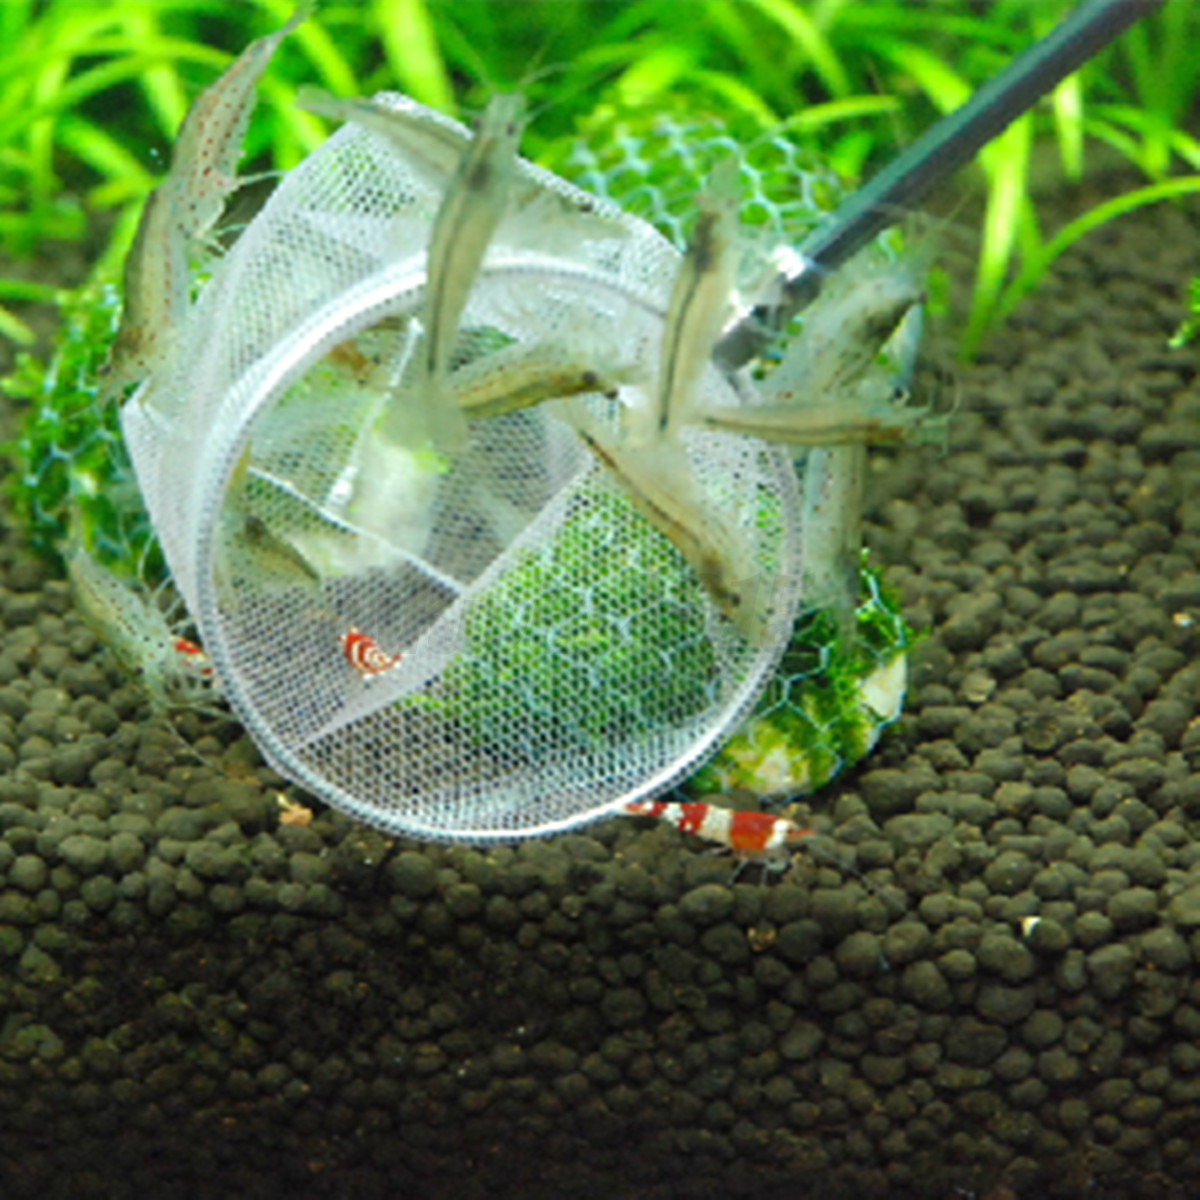 Aquarium small betta tetra fish catching 3d shrimp net for Fish catching net